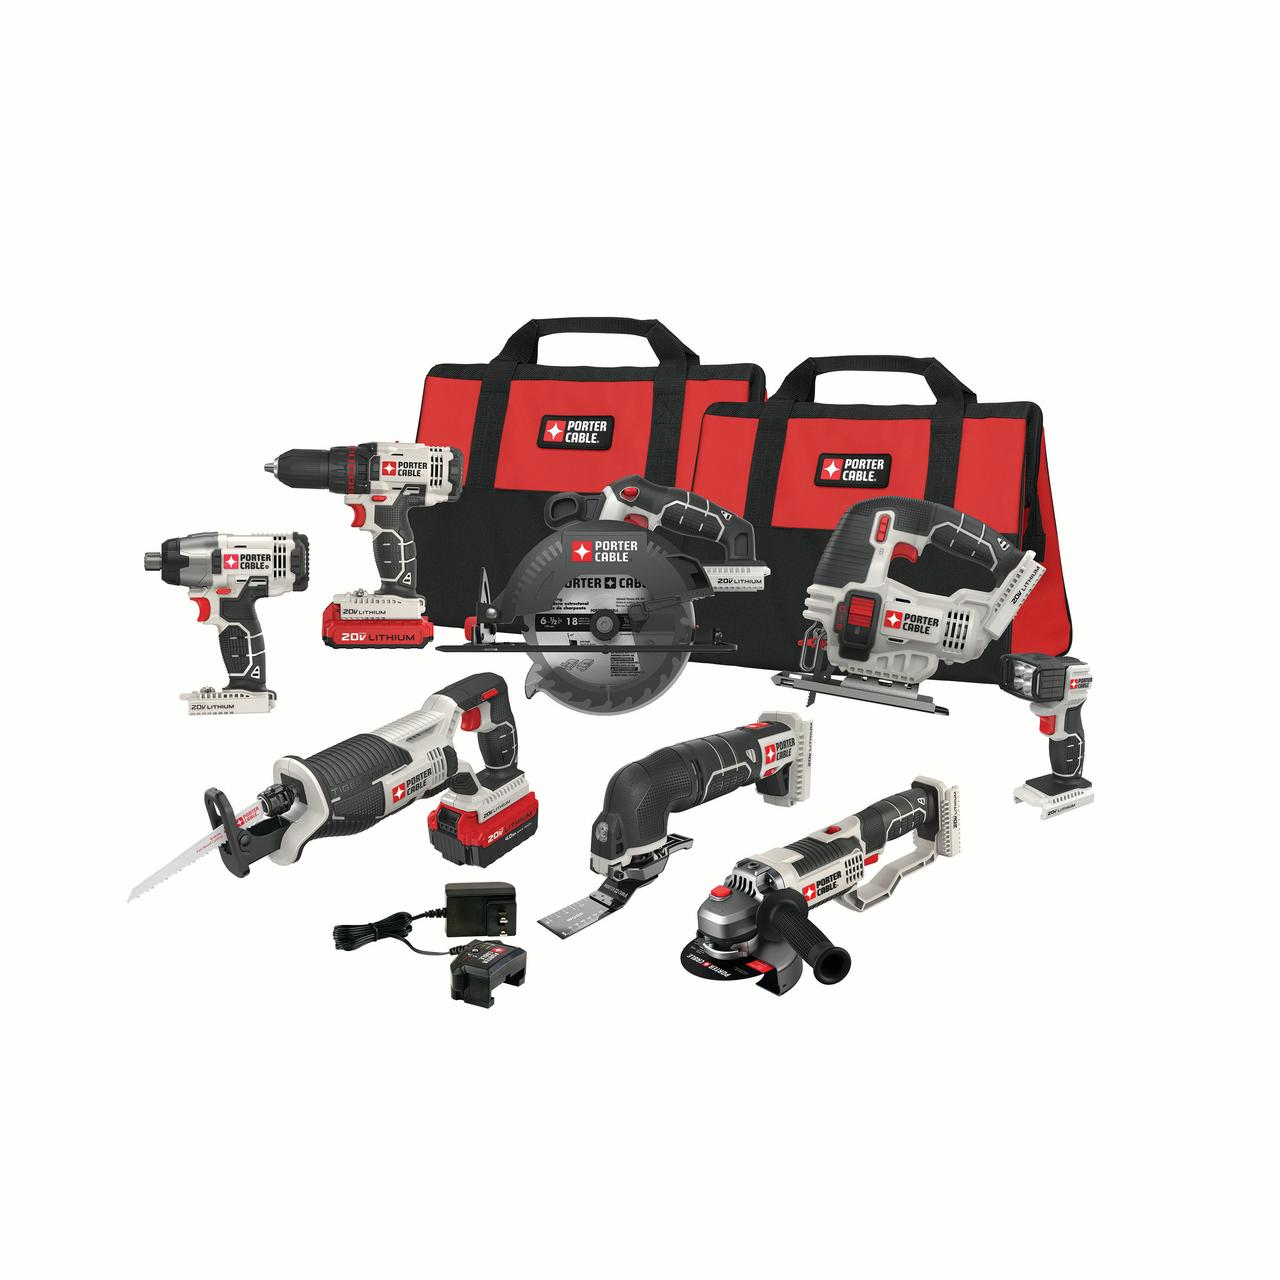 PORTER CABLE 20-Volt Max Lithium-Ion 8 Tool Combo Kit, PCCK619L8